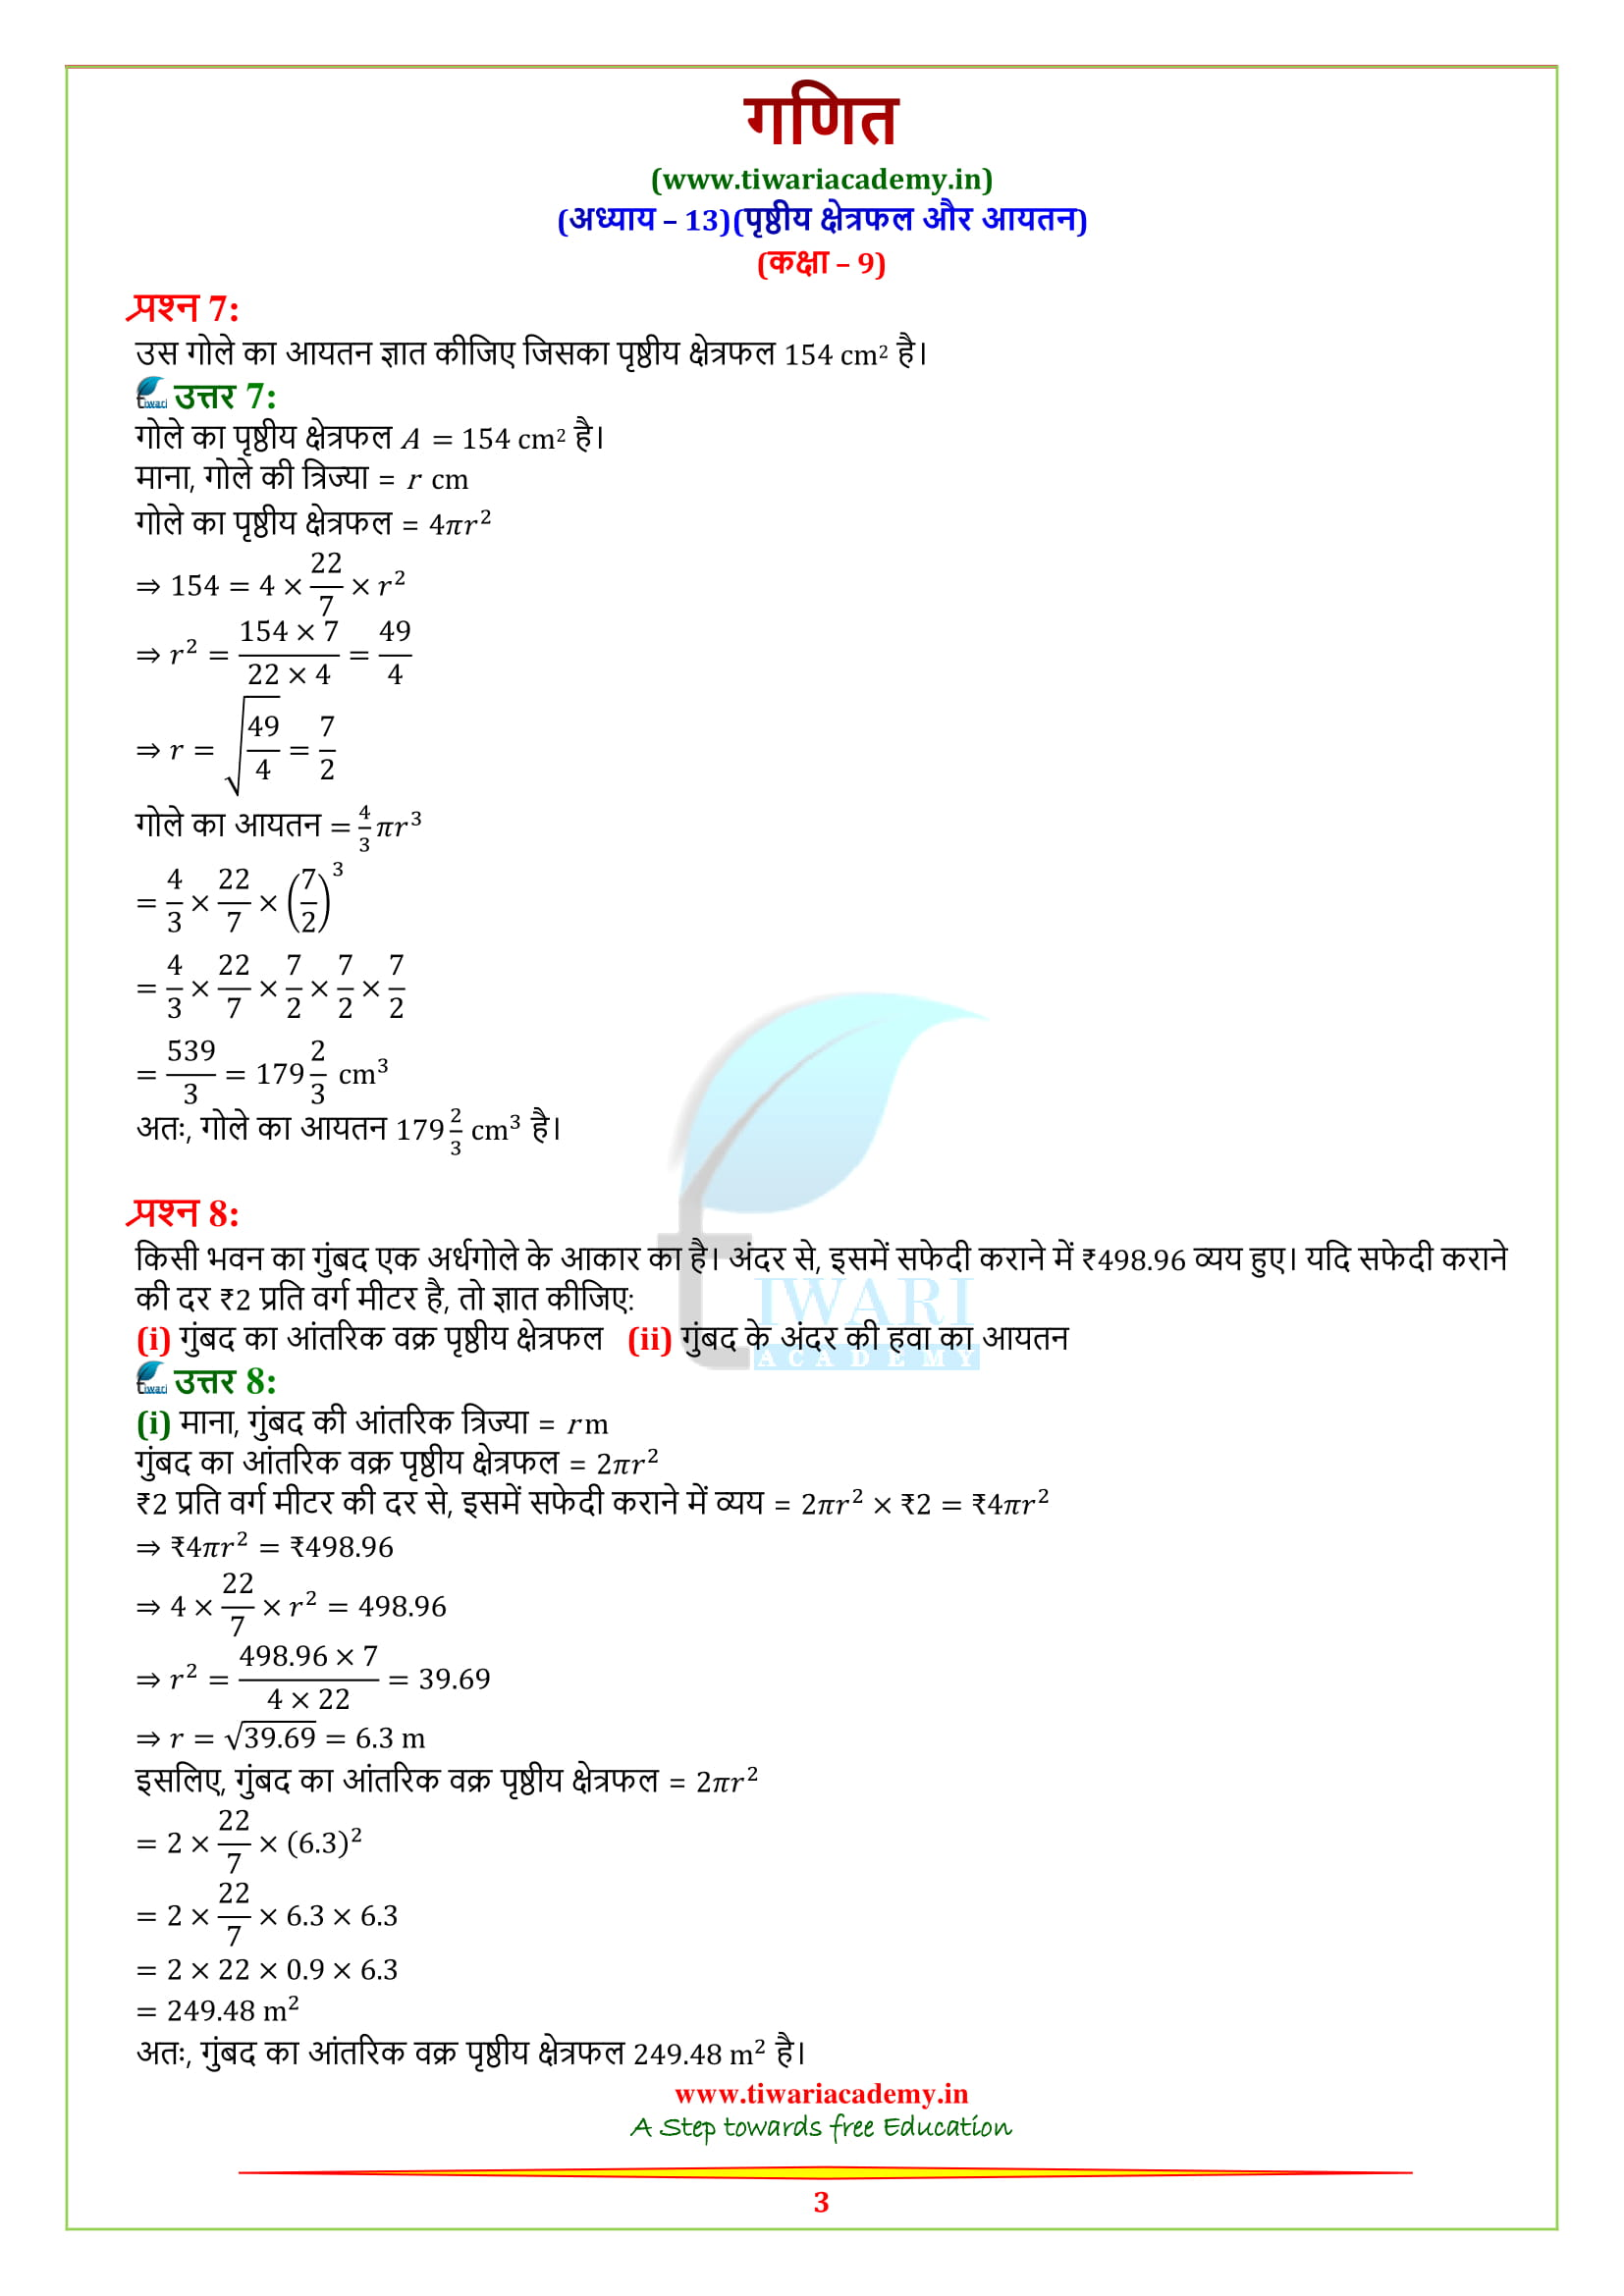 9 Maths exercise 13.8 solutions in hindi all question guide